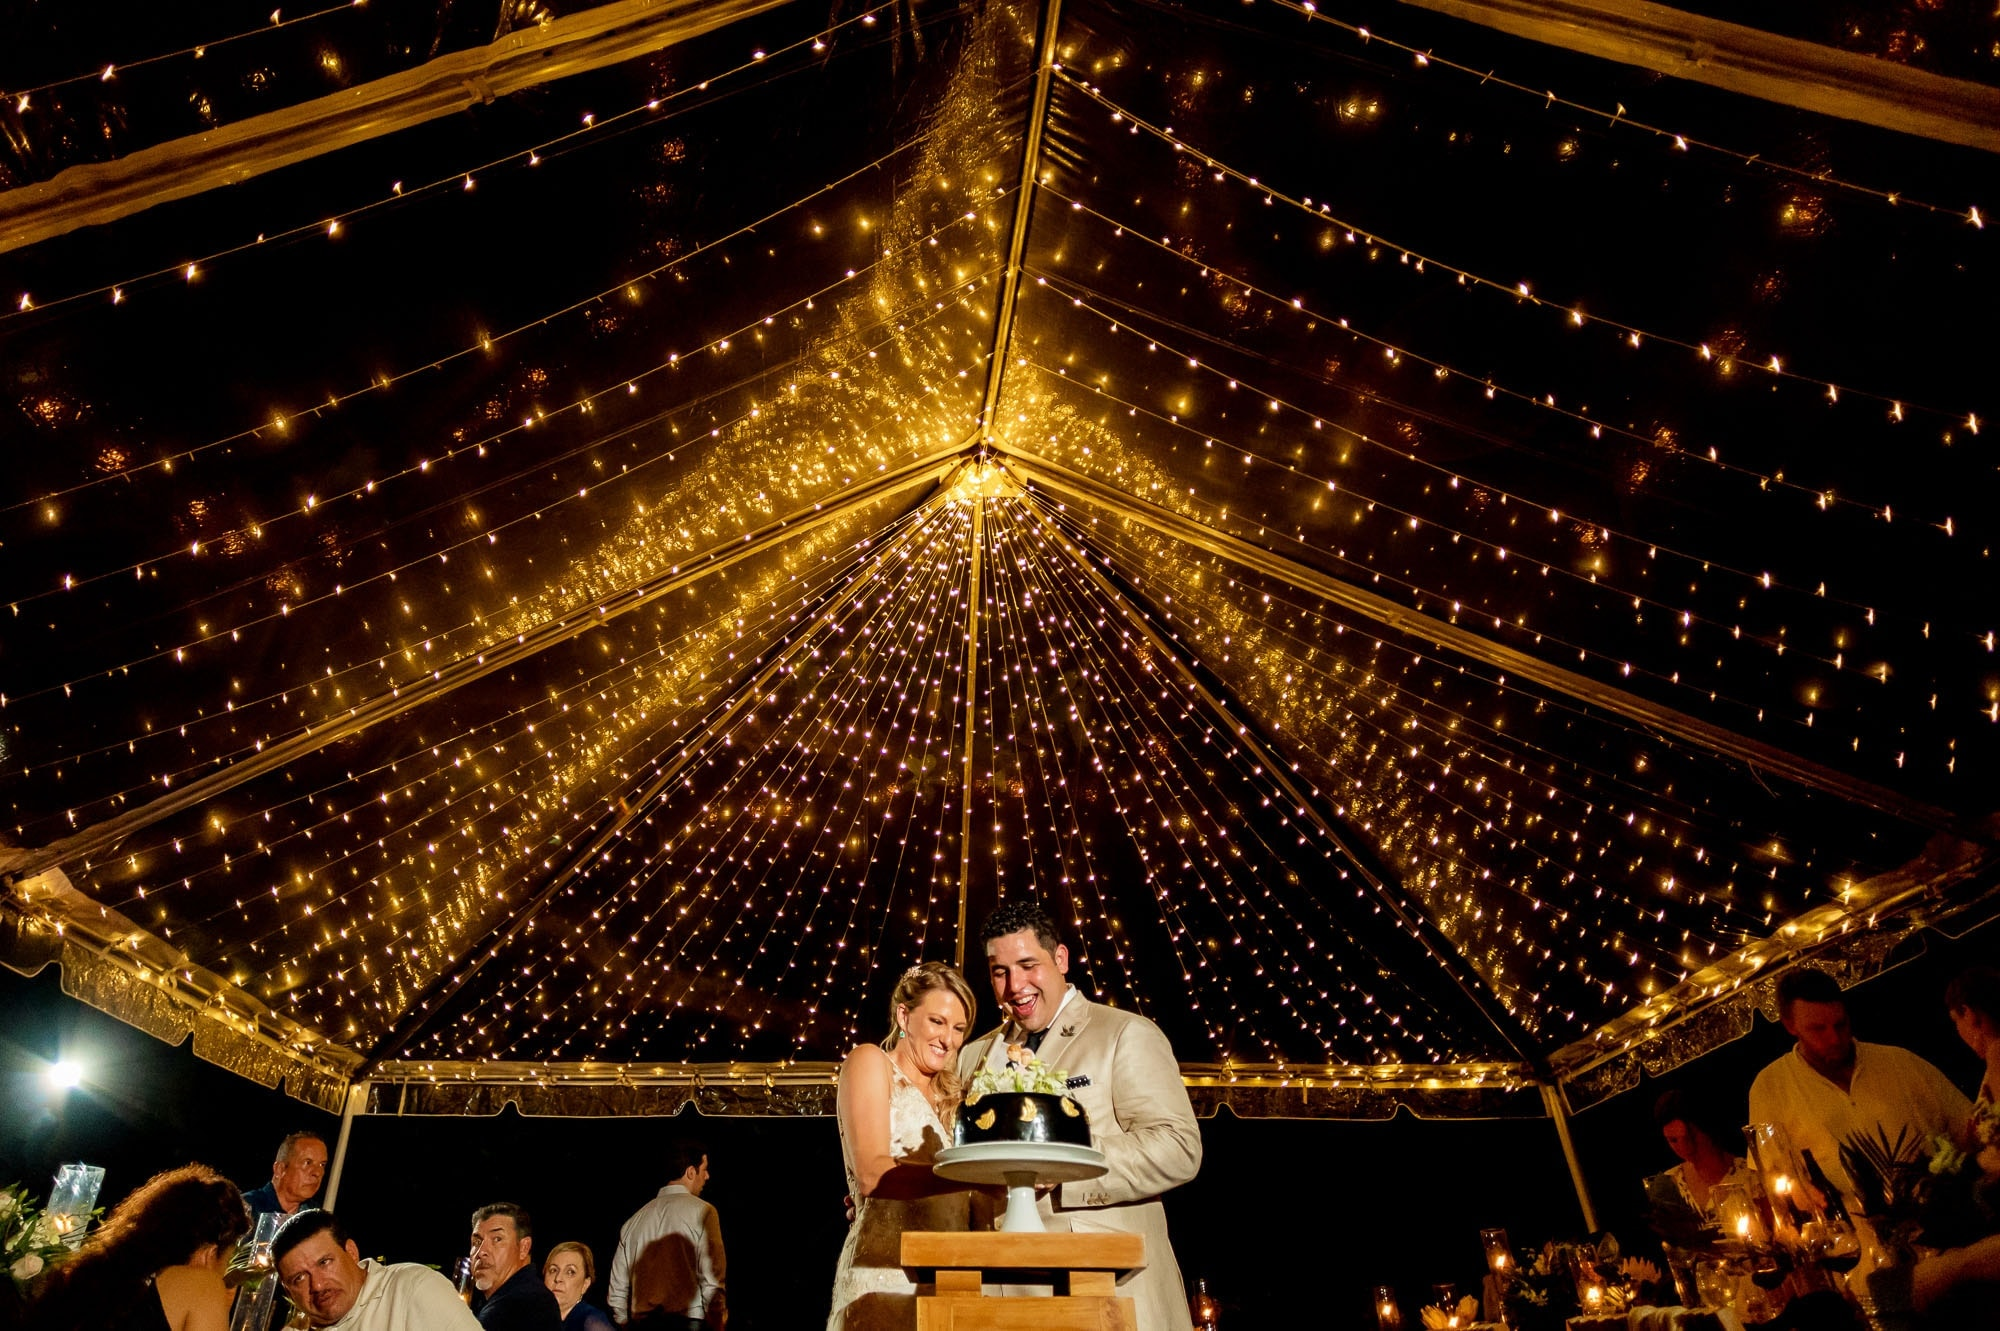 tent with lights at wedding